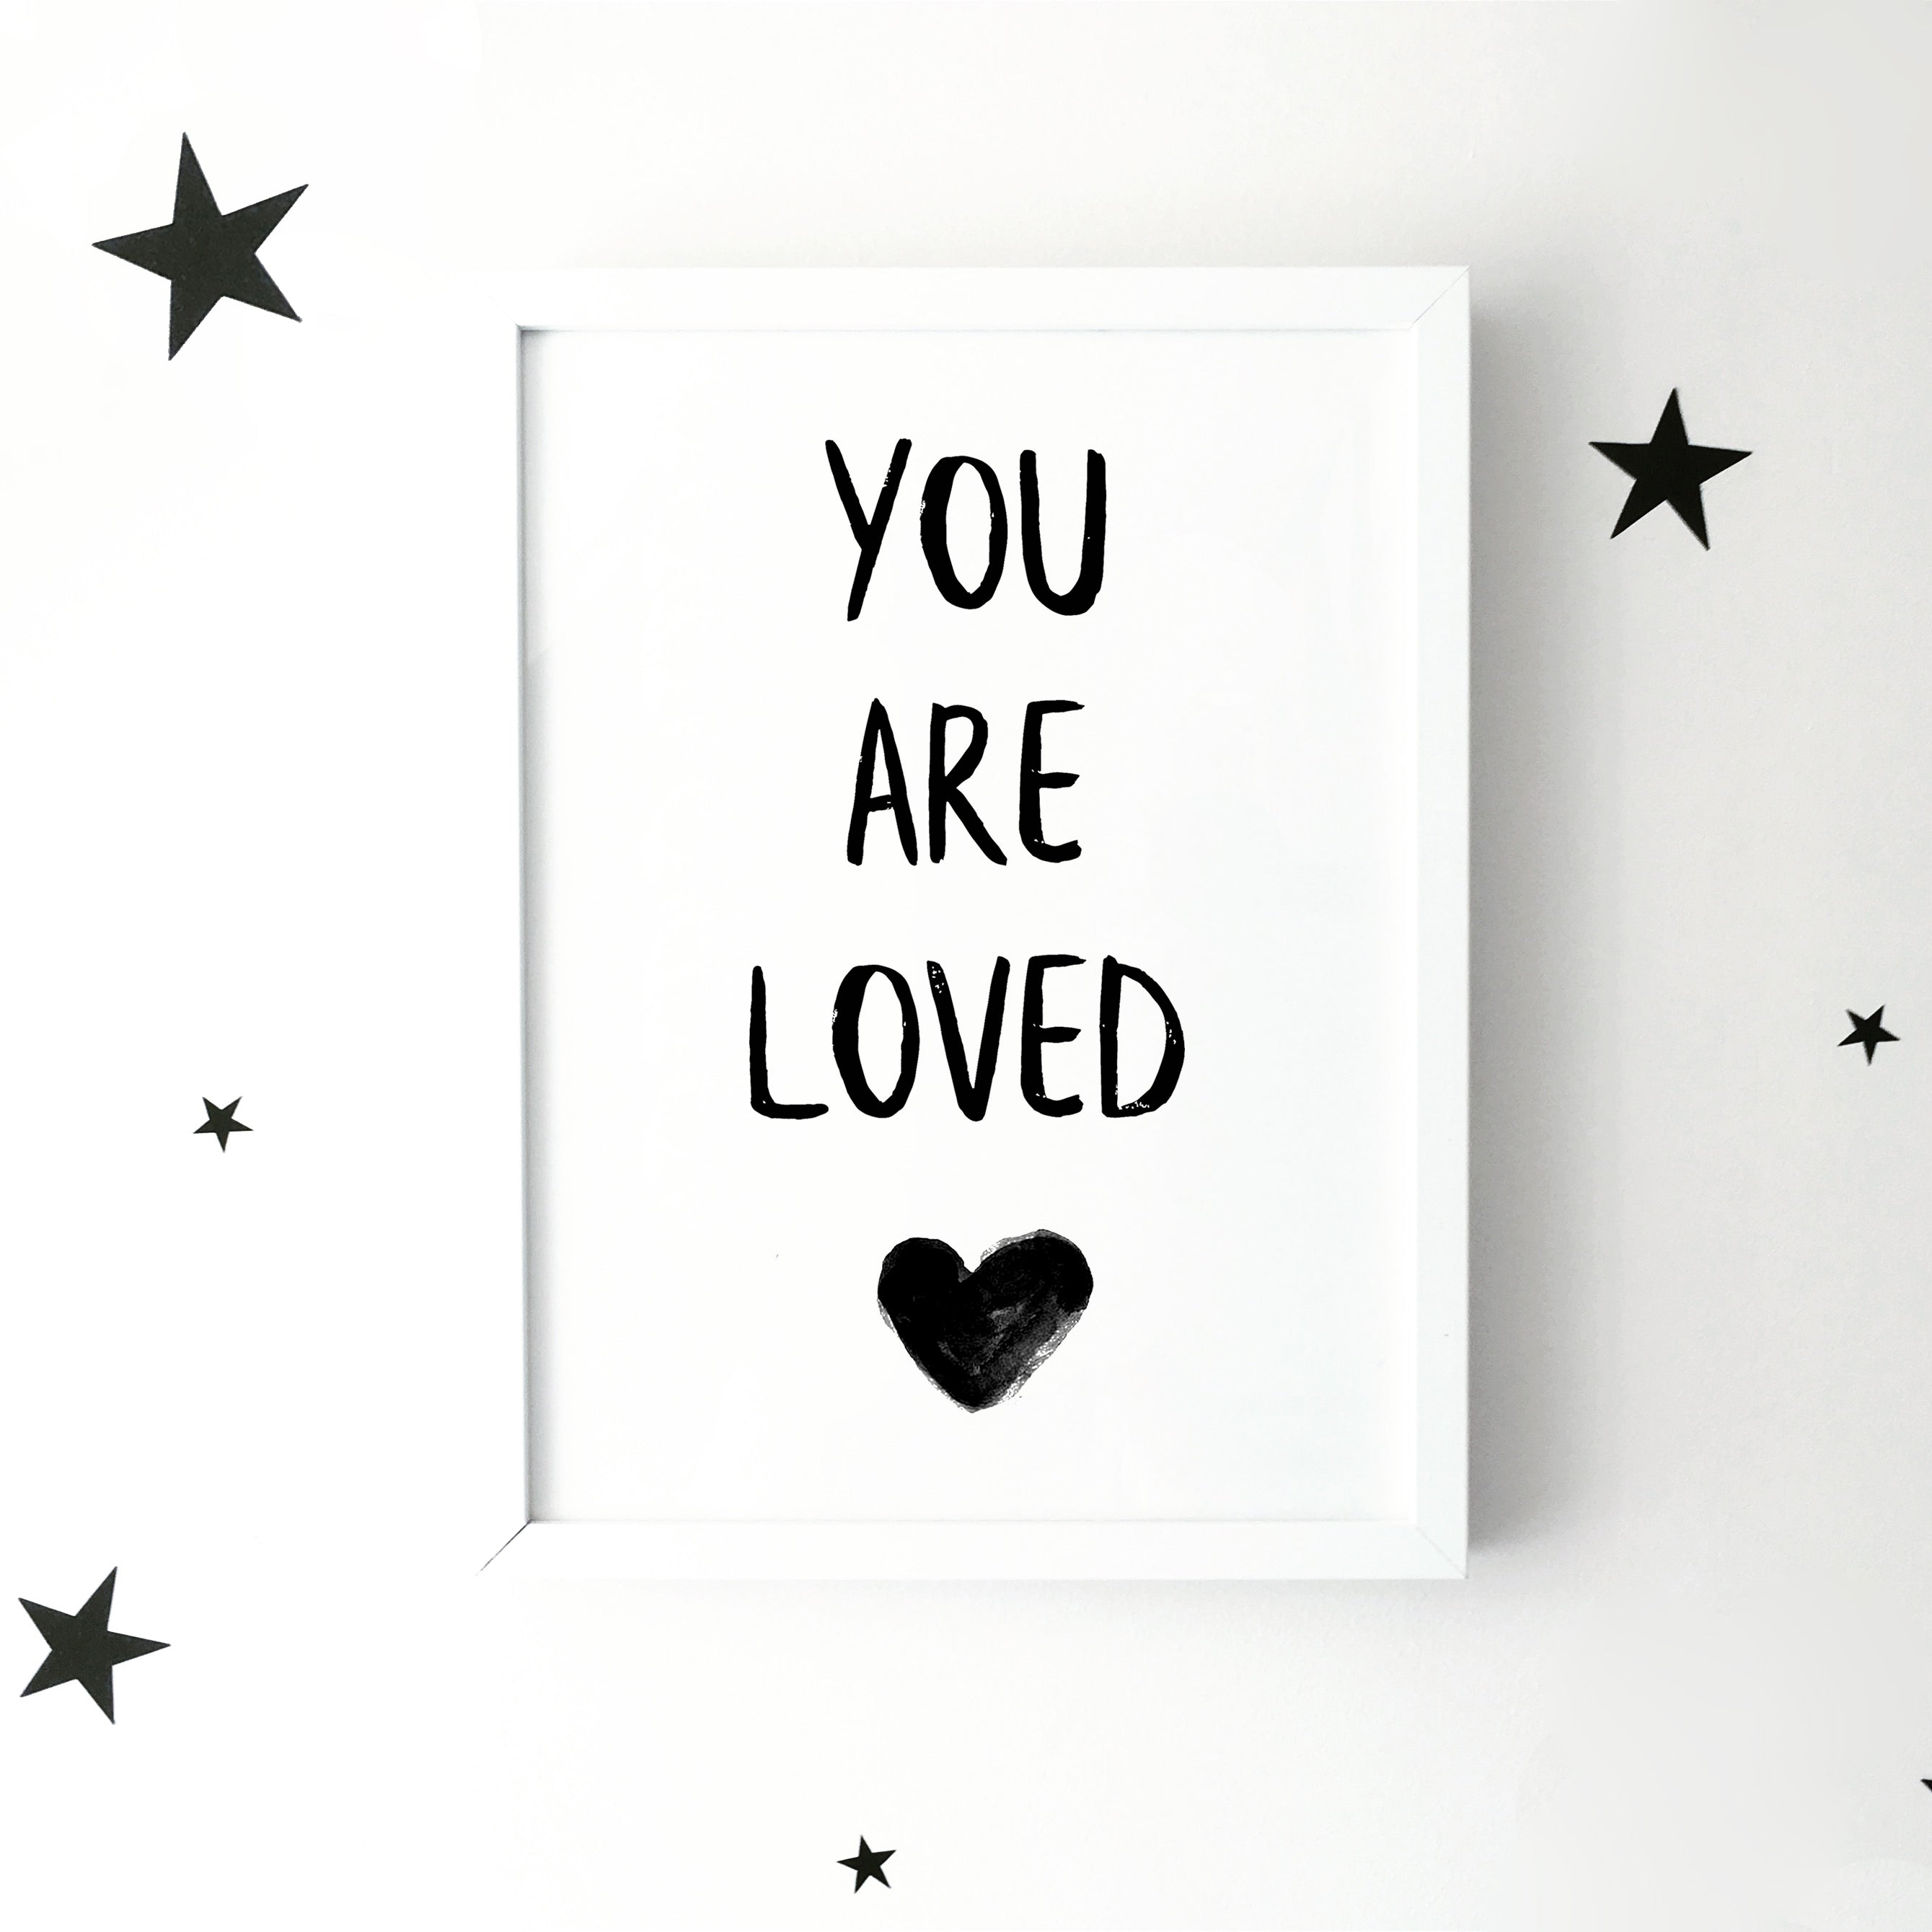 'You are loved' with heart monochrome print | ink & white